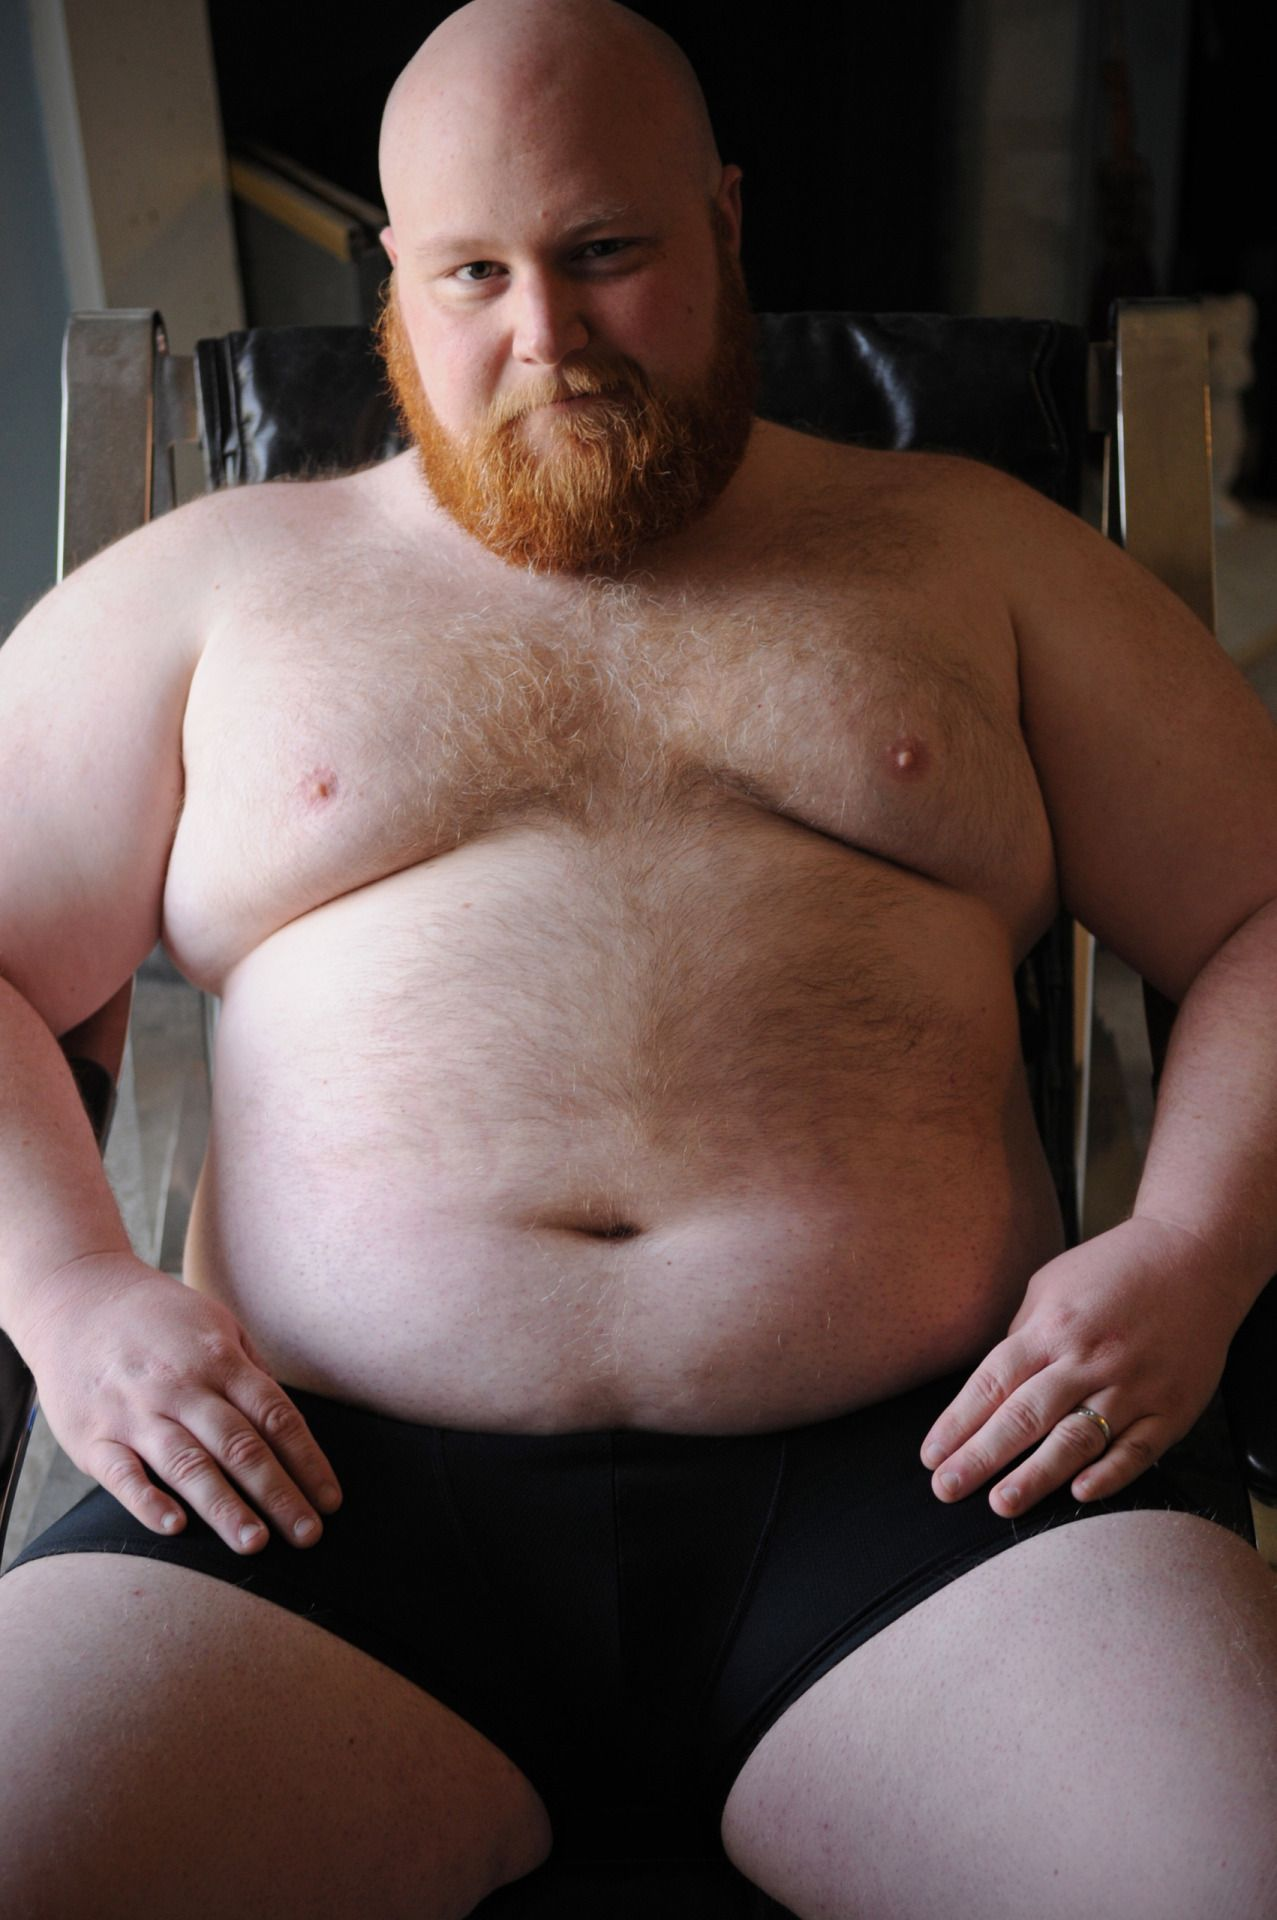 Chubby hairy gay man